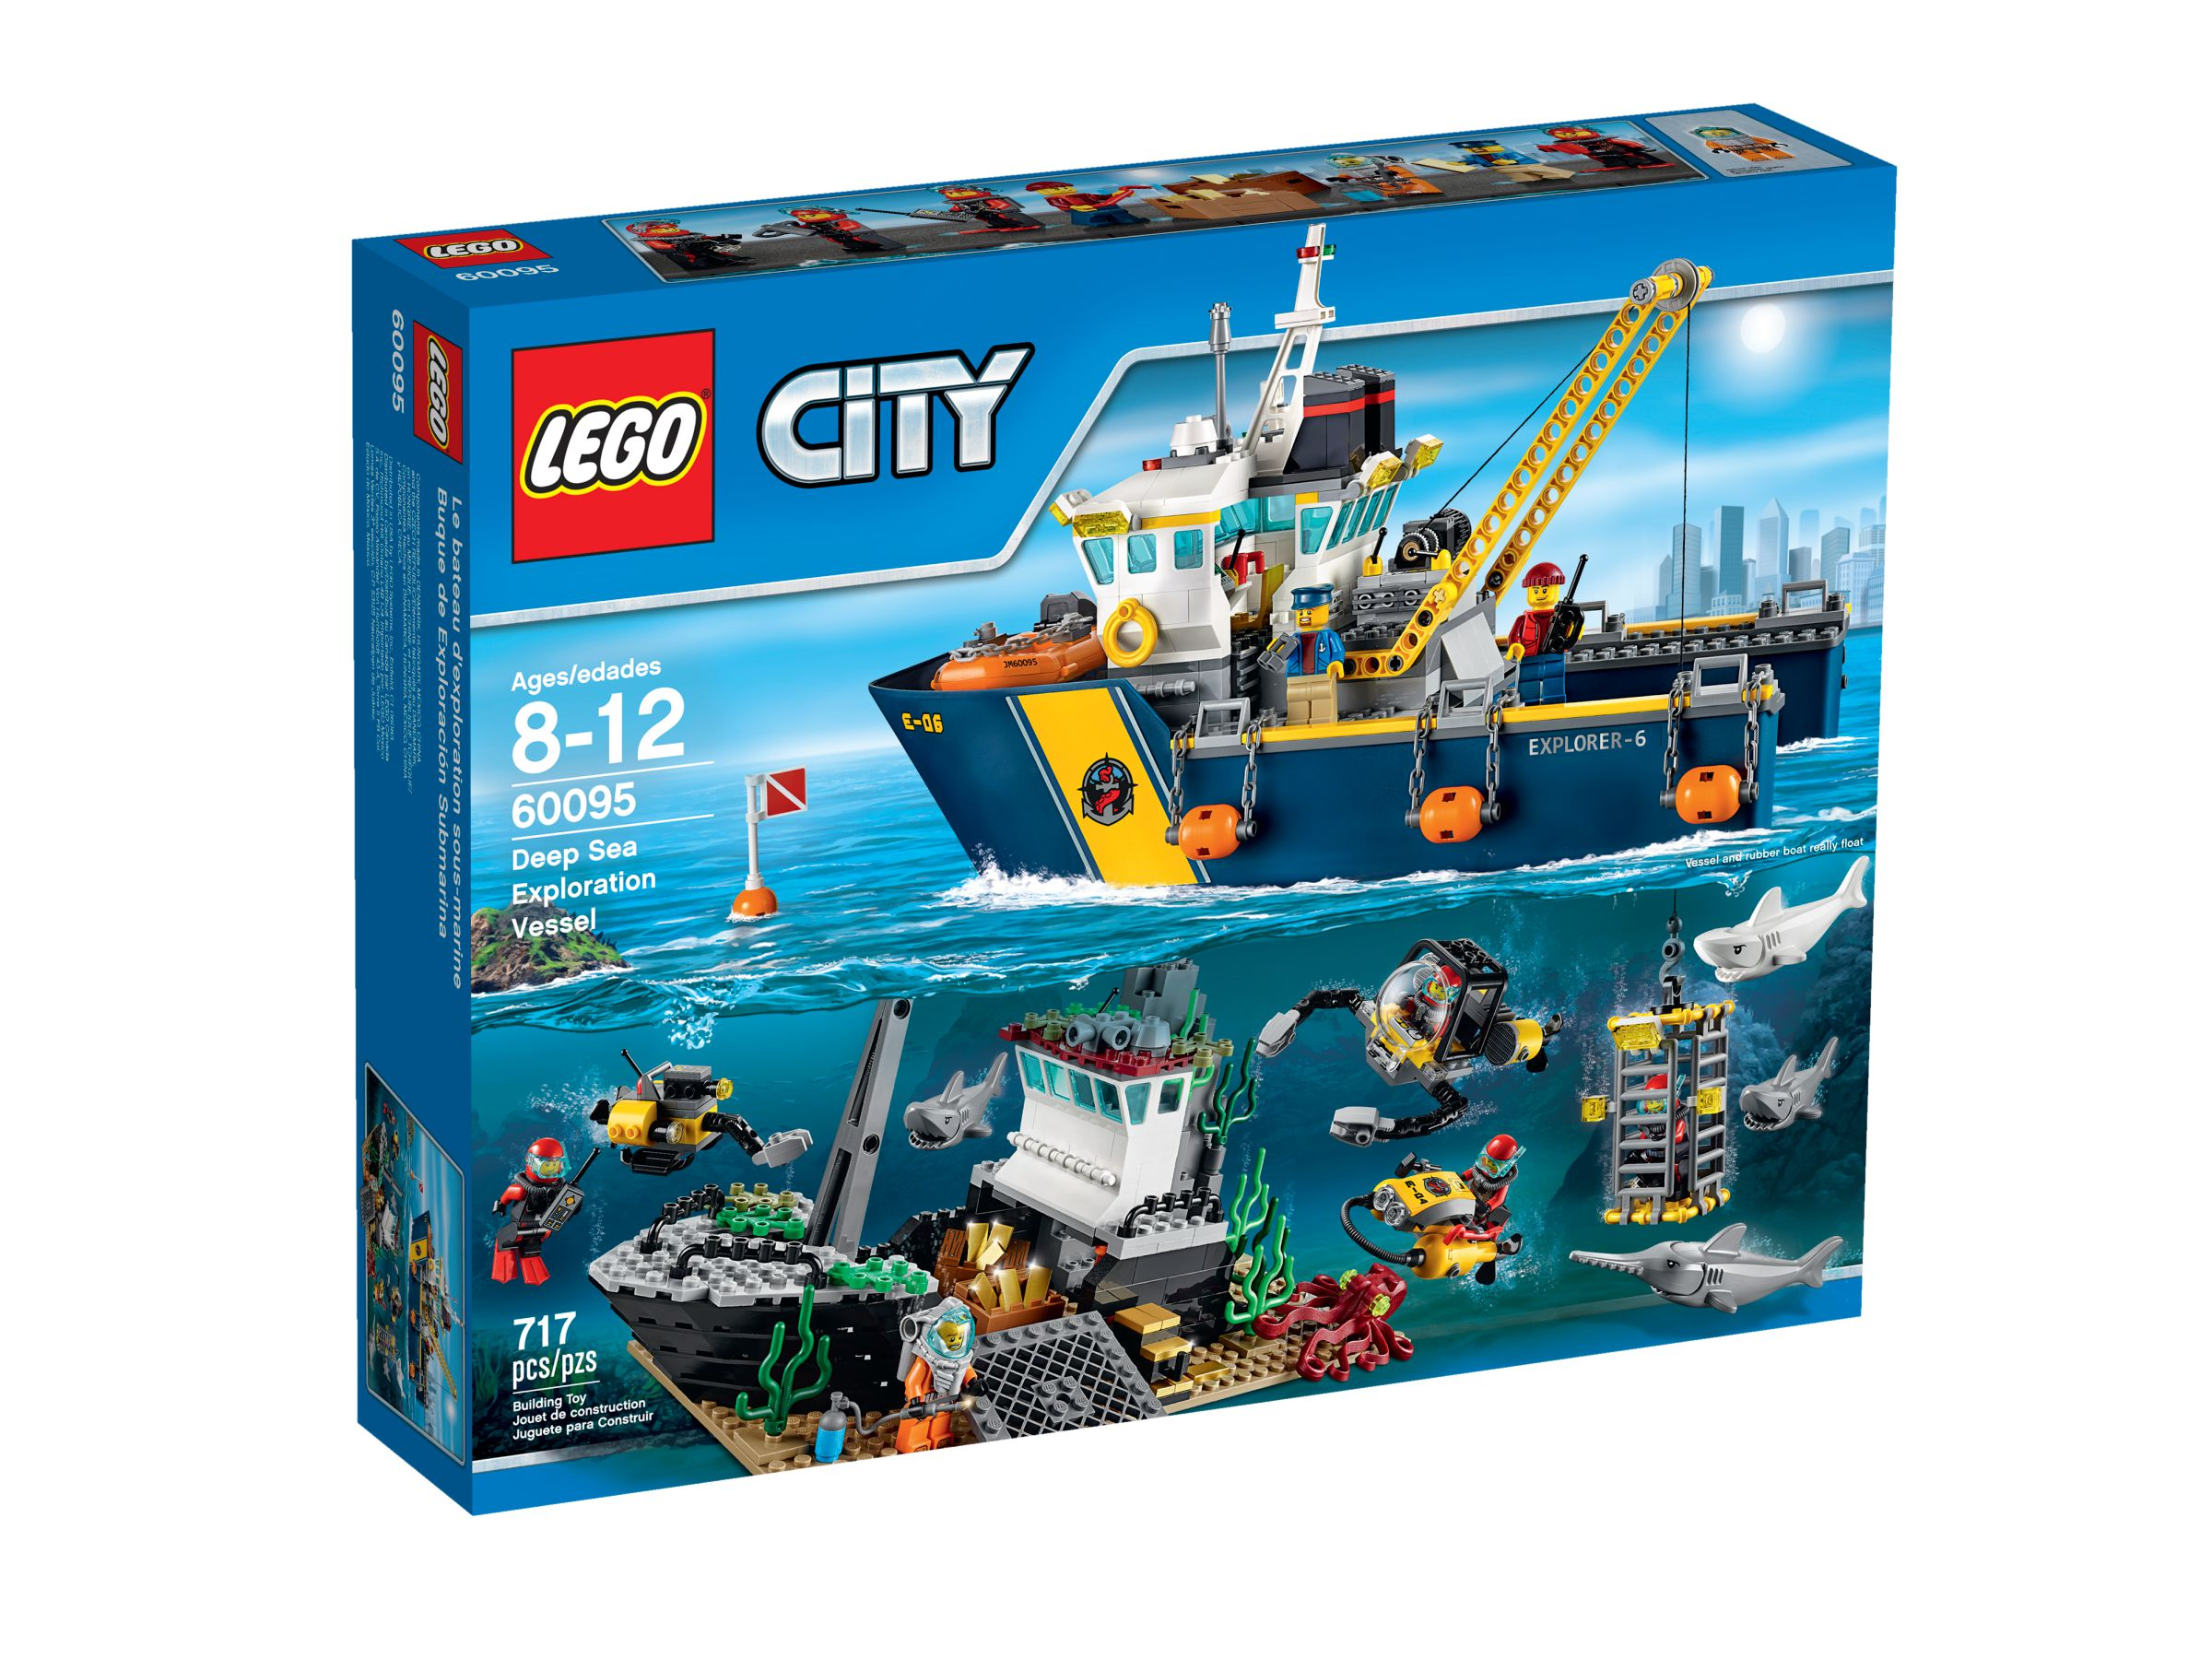 LEGO City 60095 Tiefsee-Expeditionsschiff LEGO_60095_alt1.jpg